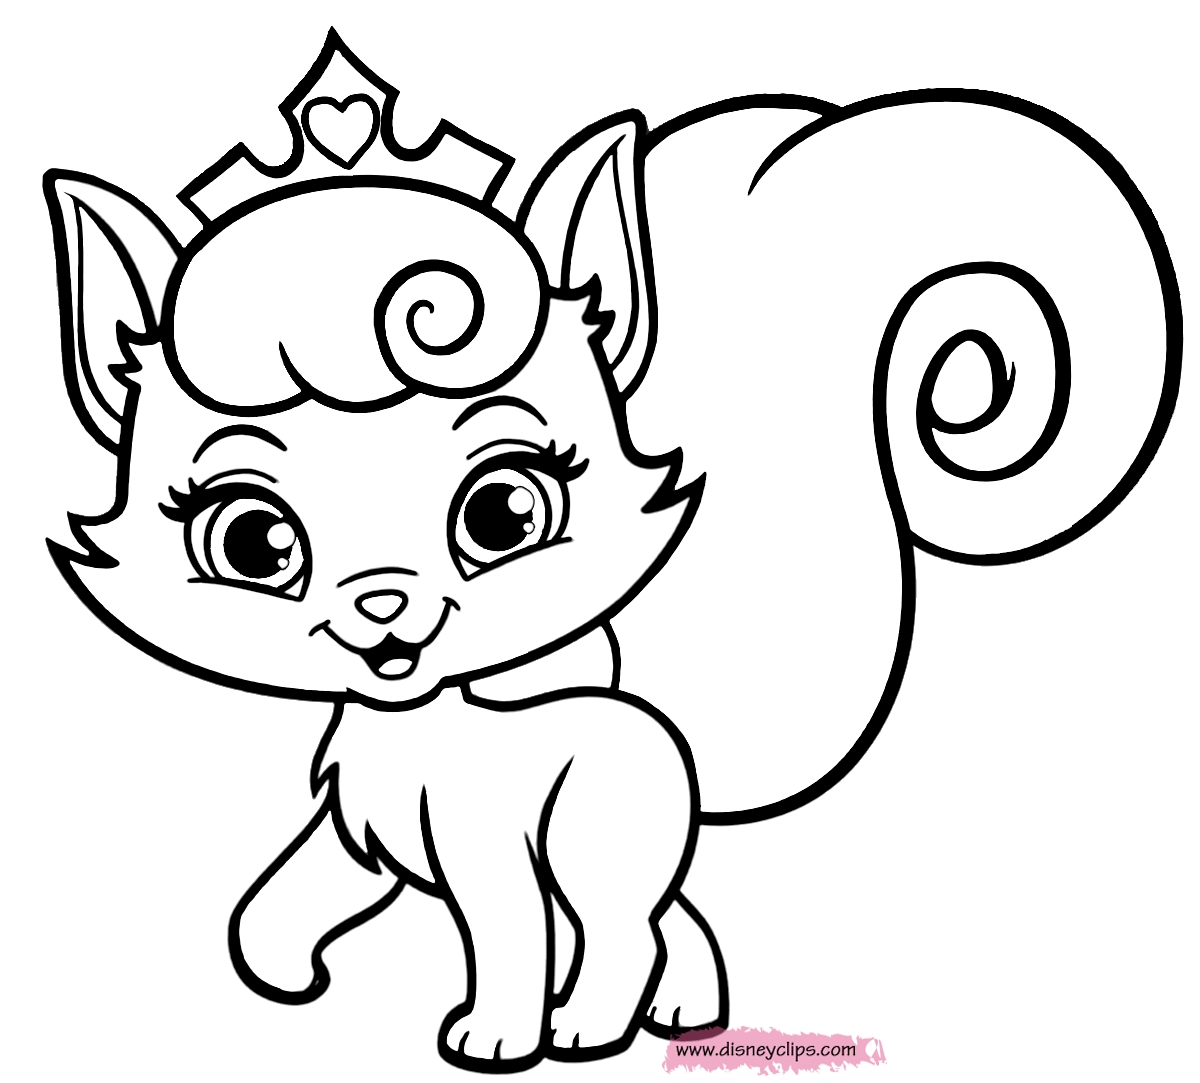 puppy and kitten coloring pages - kitten and puppy coloring pages to print